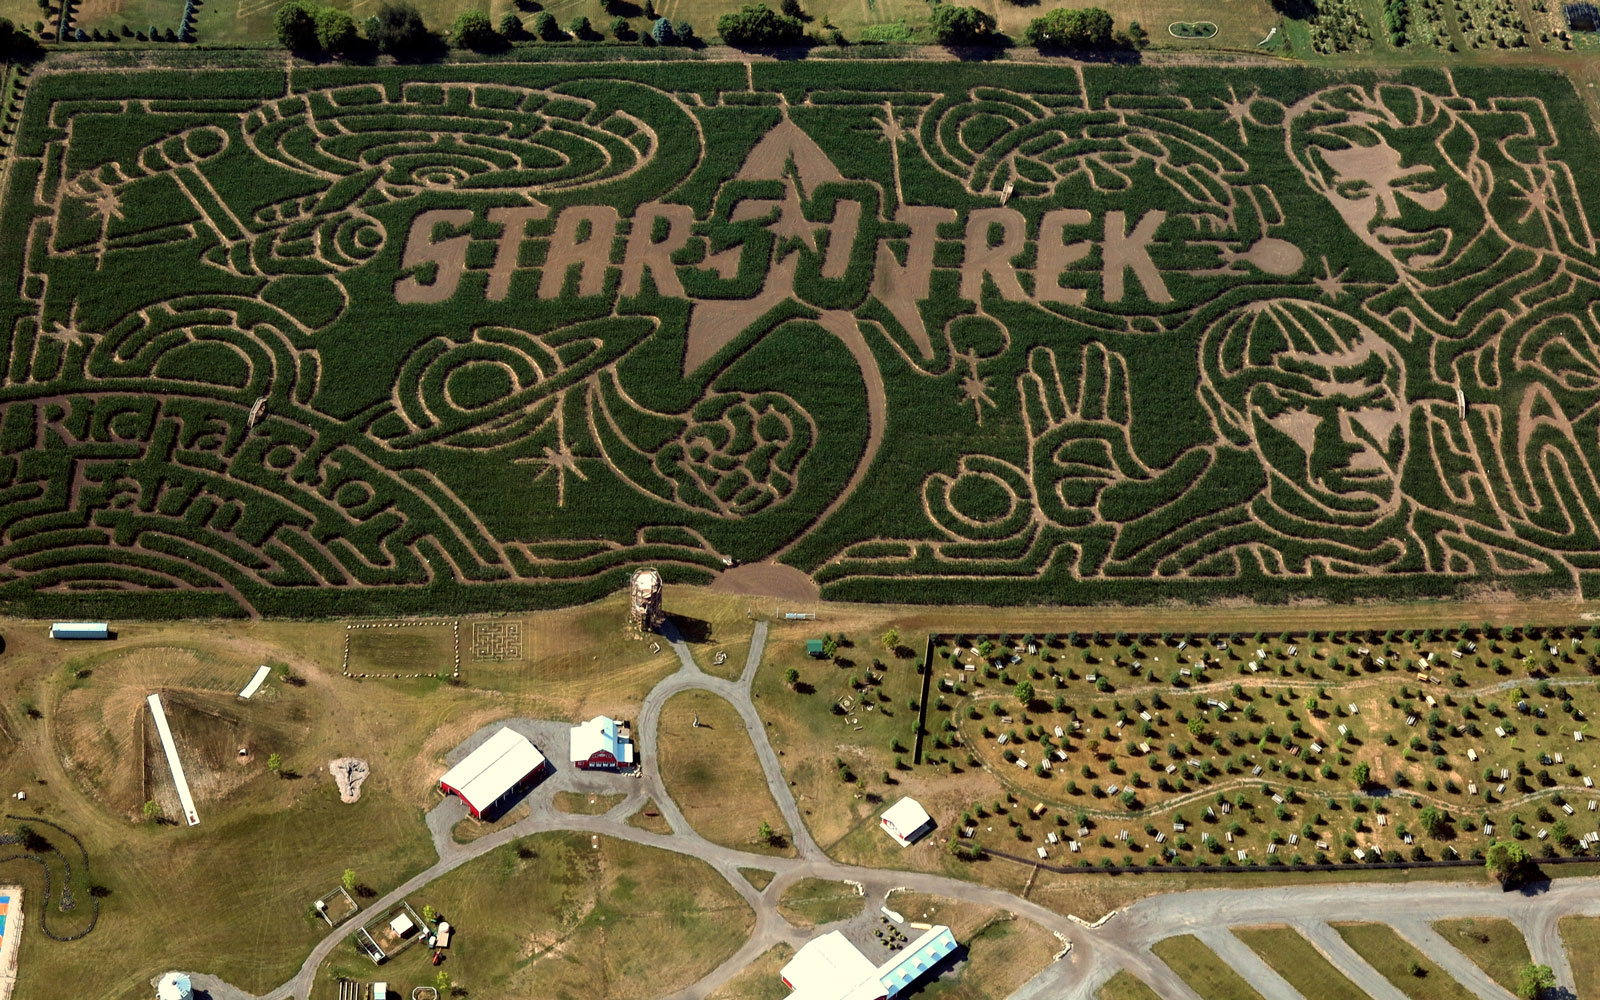 There's a Star Trek corn maze in a suburb of Chicago